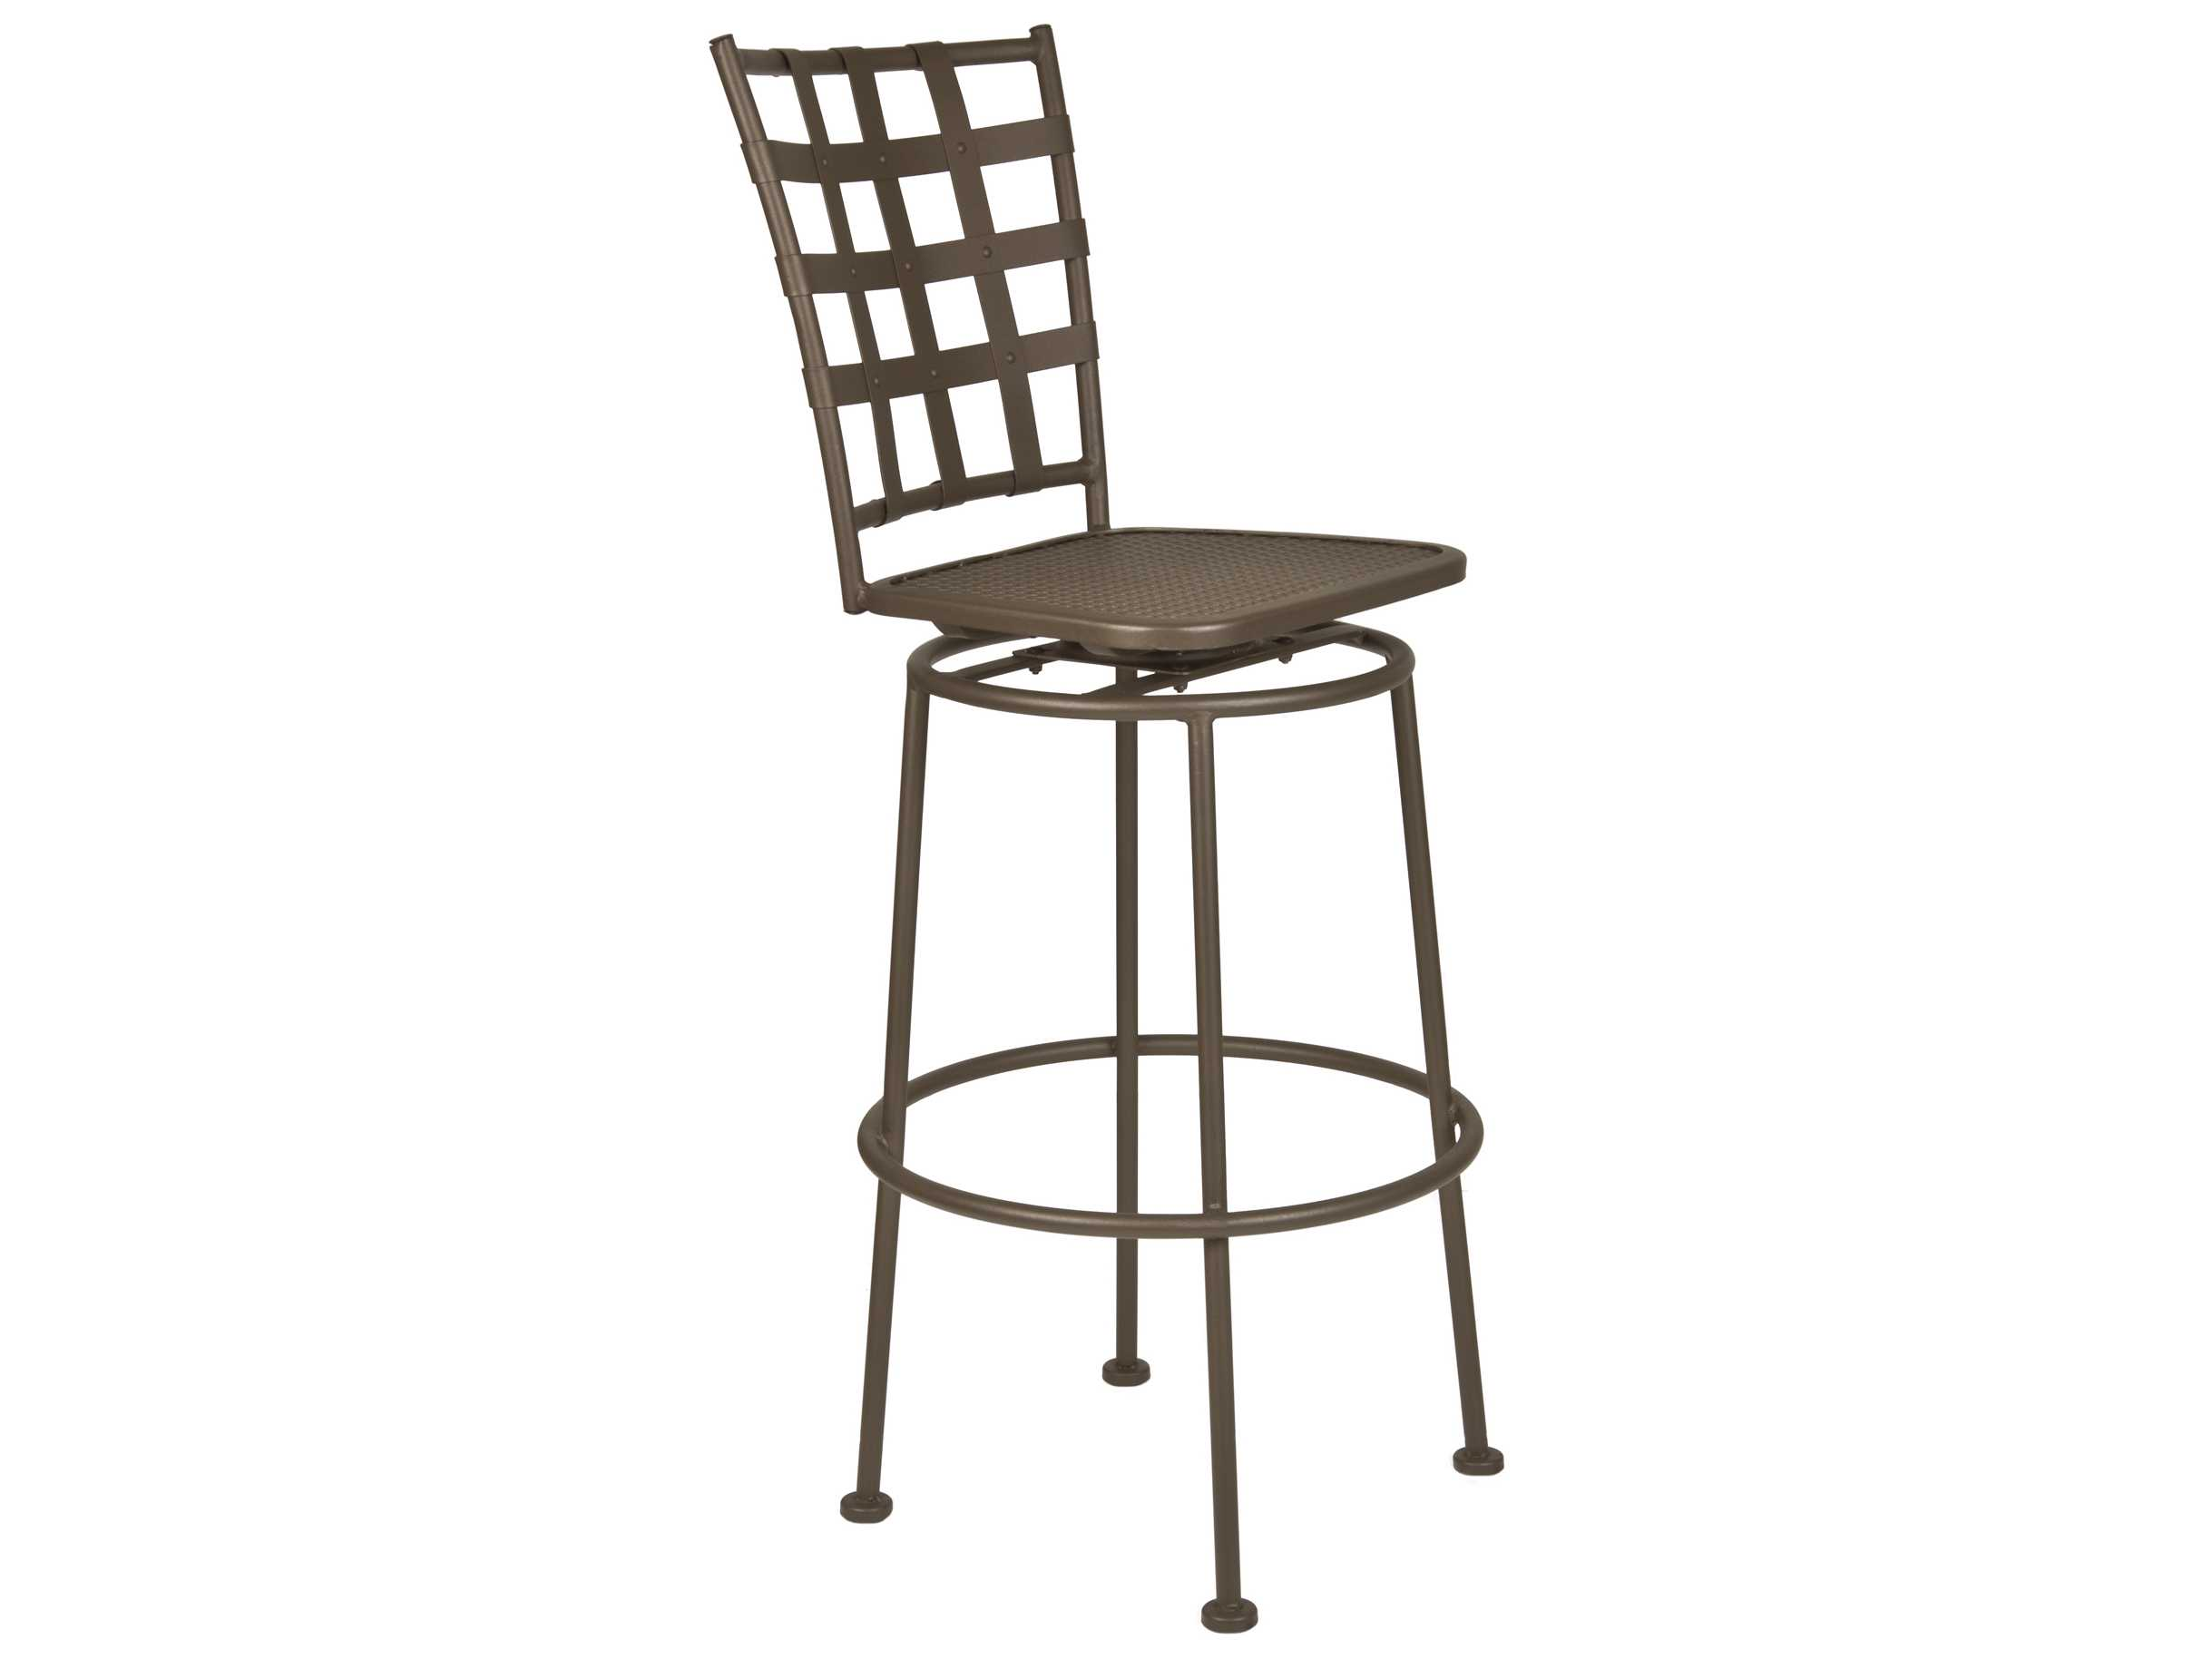 Ow Lee Casa Wrought Iron Bar Stool 716 Sbs